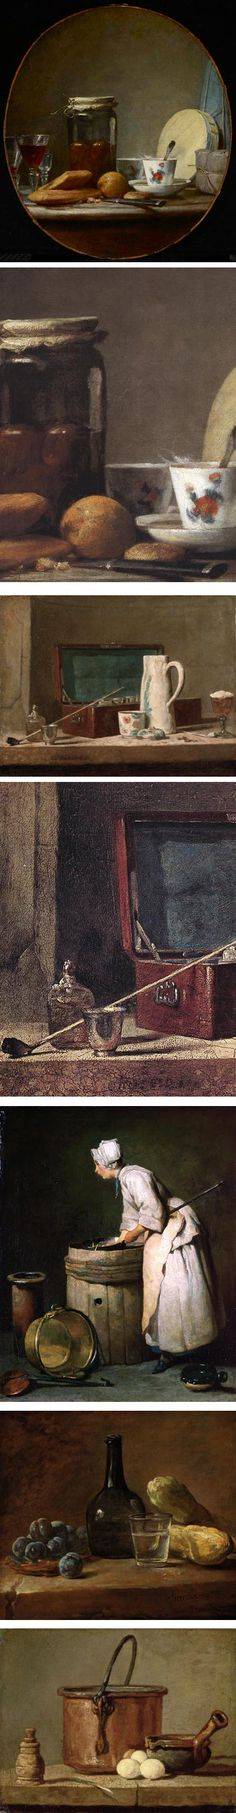 lines and colors :: a blog about drawing, painting, illustration, comics, concept art and other visual arts » Chardin: Painter of Silence